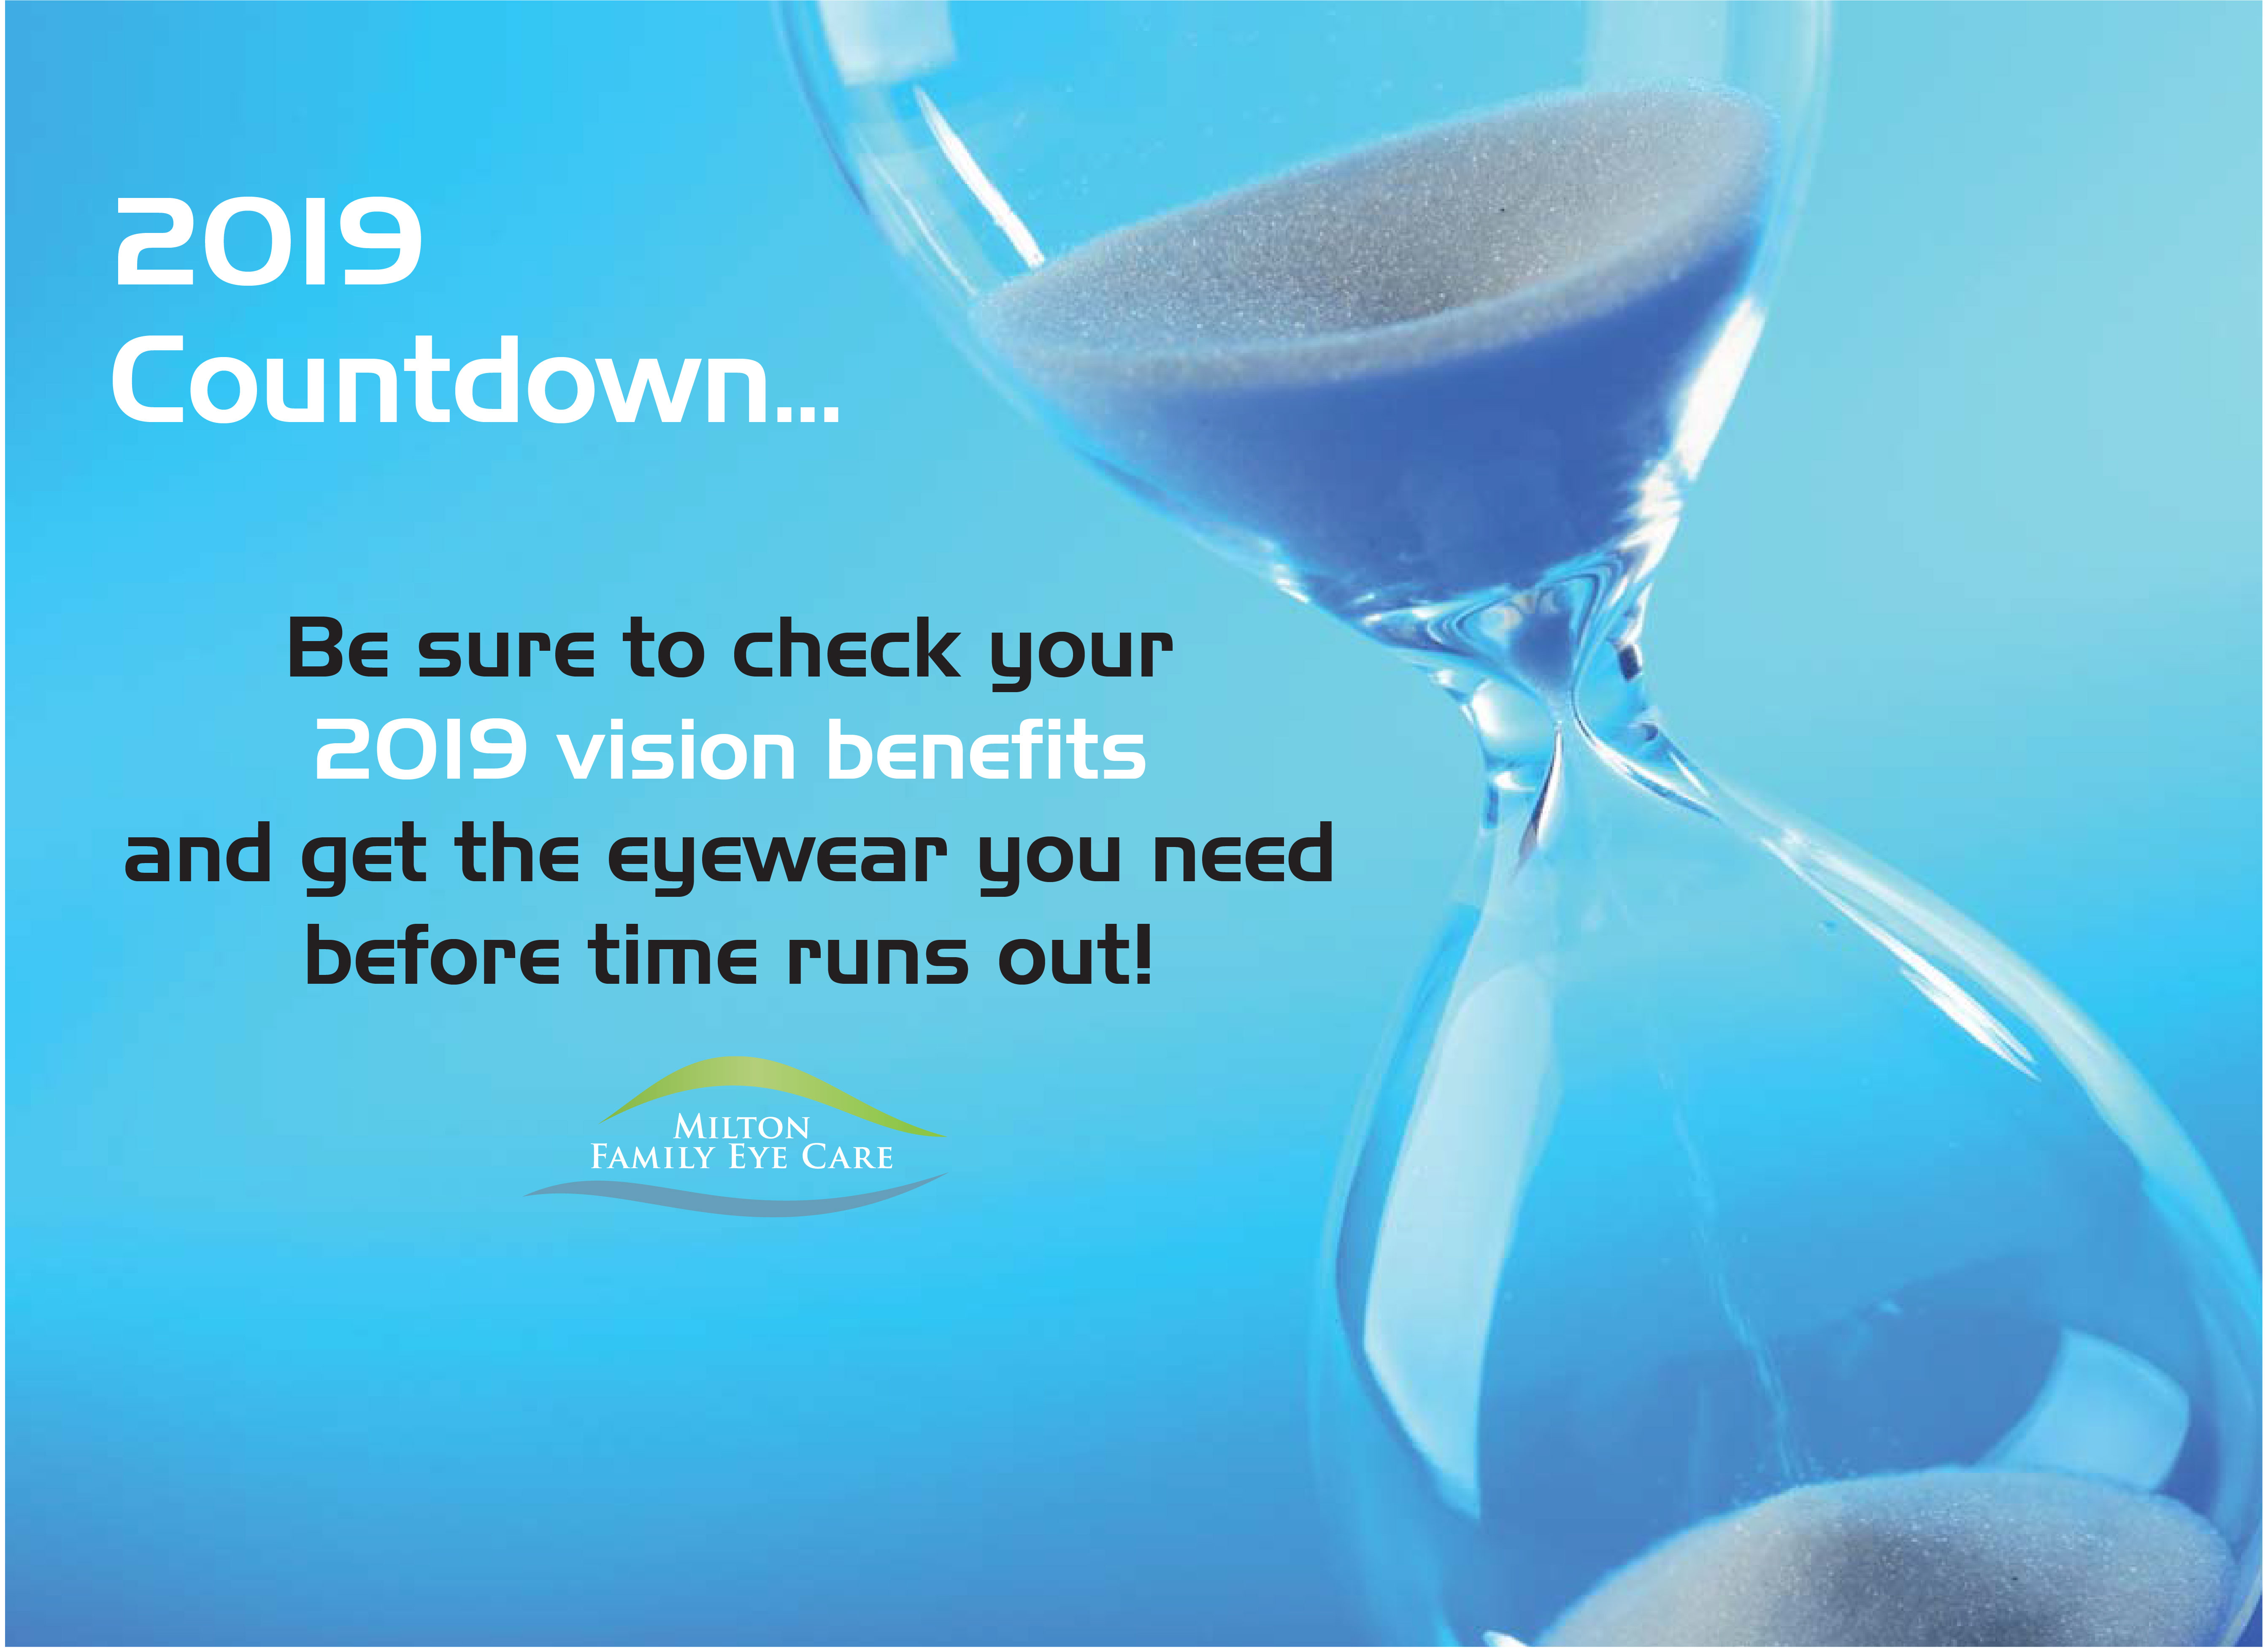 Photograph of an hourglass. Text reads 2019 countdown... Be sure to check your 2019 vision benefits and get the eyewear you need before time runs out!